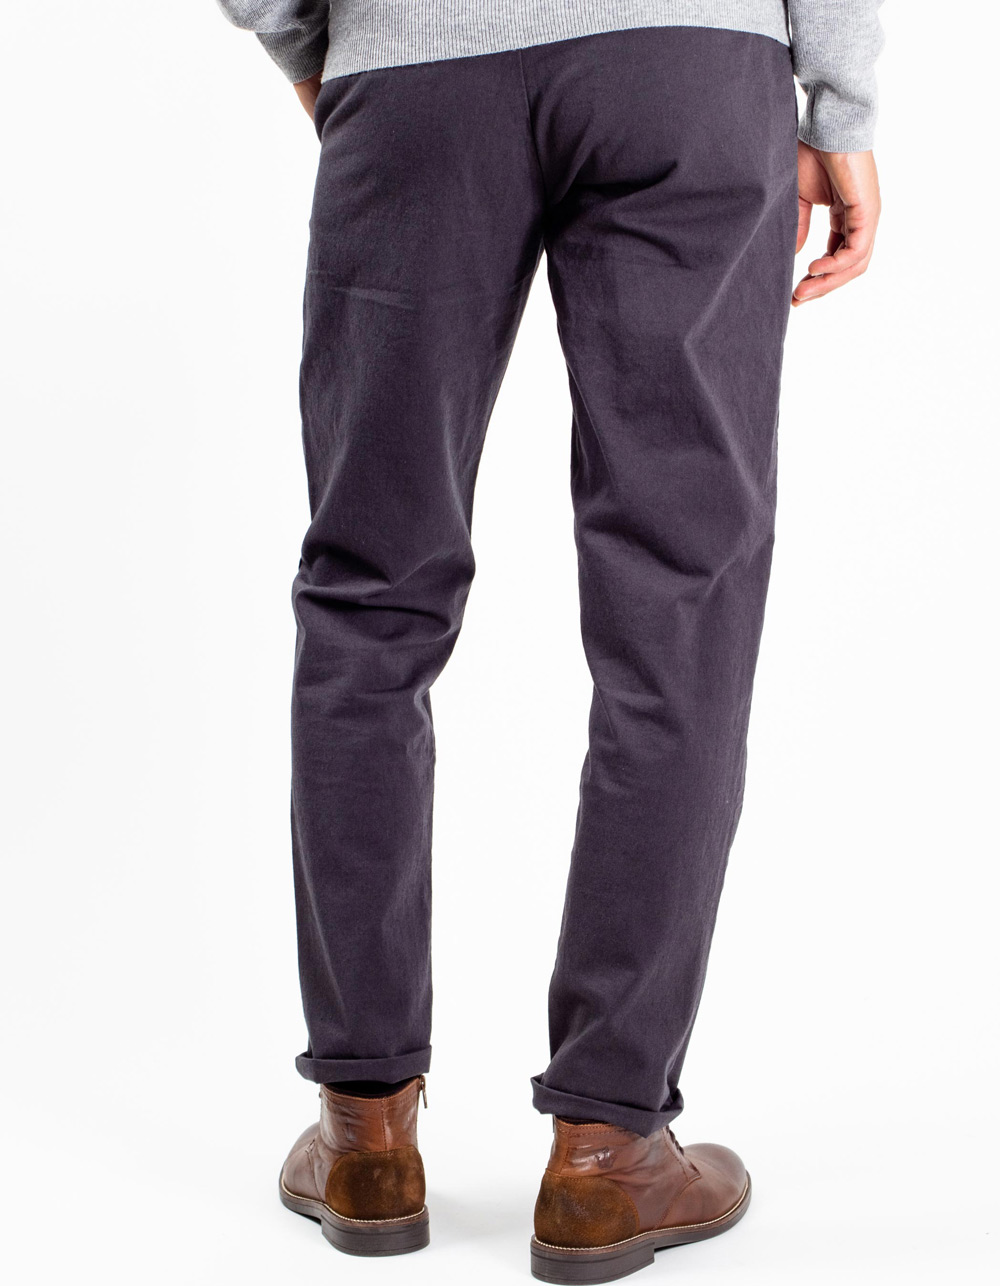 Dark grey chinos trousers - Backside